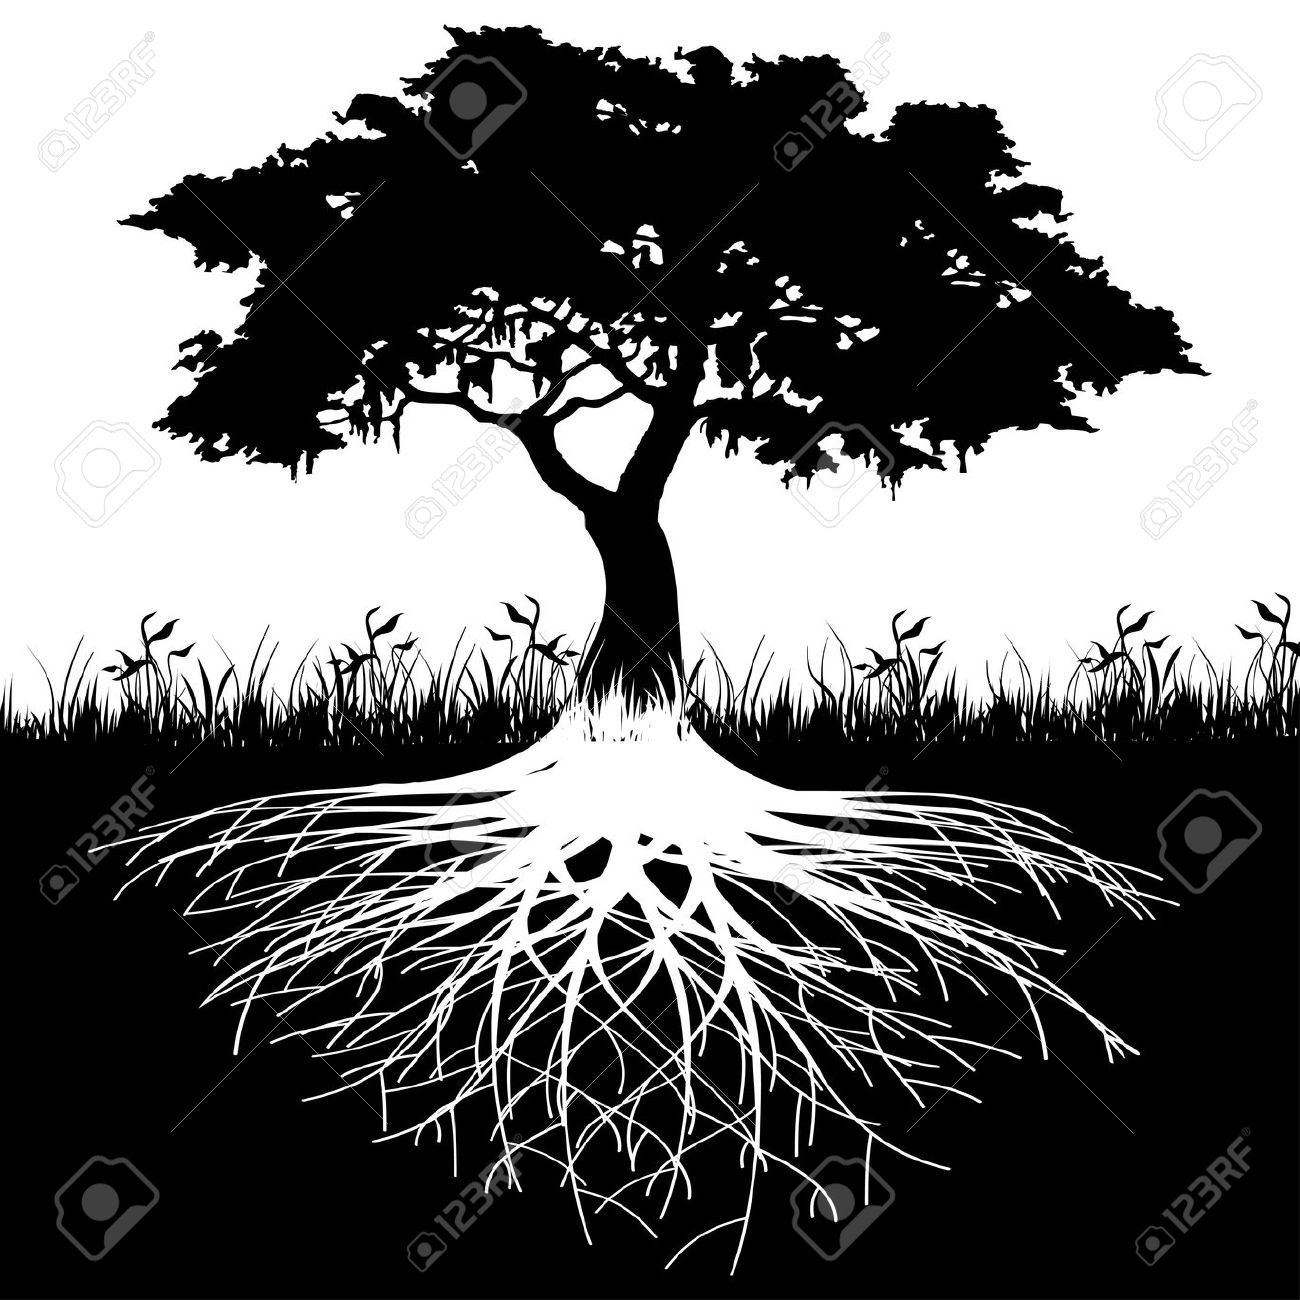 Roots clipart detailed tree. Of life with trees